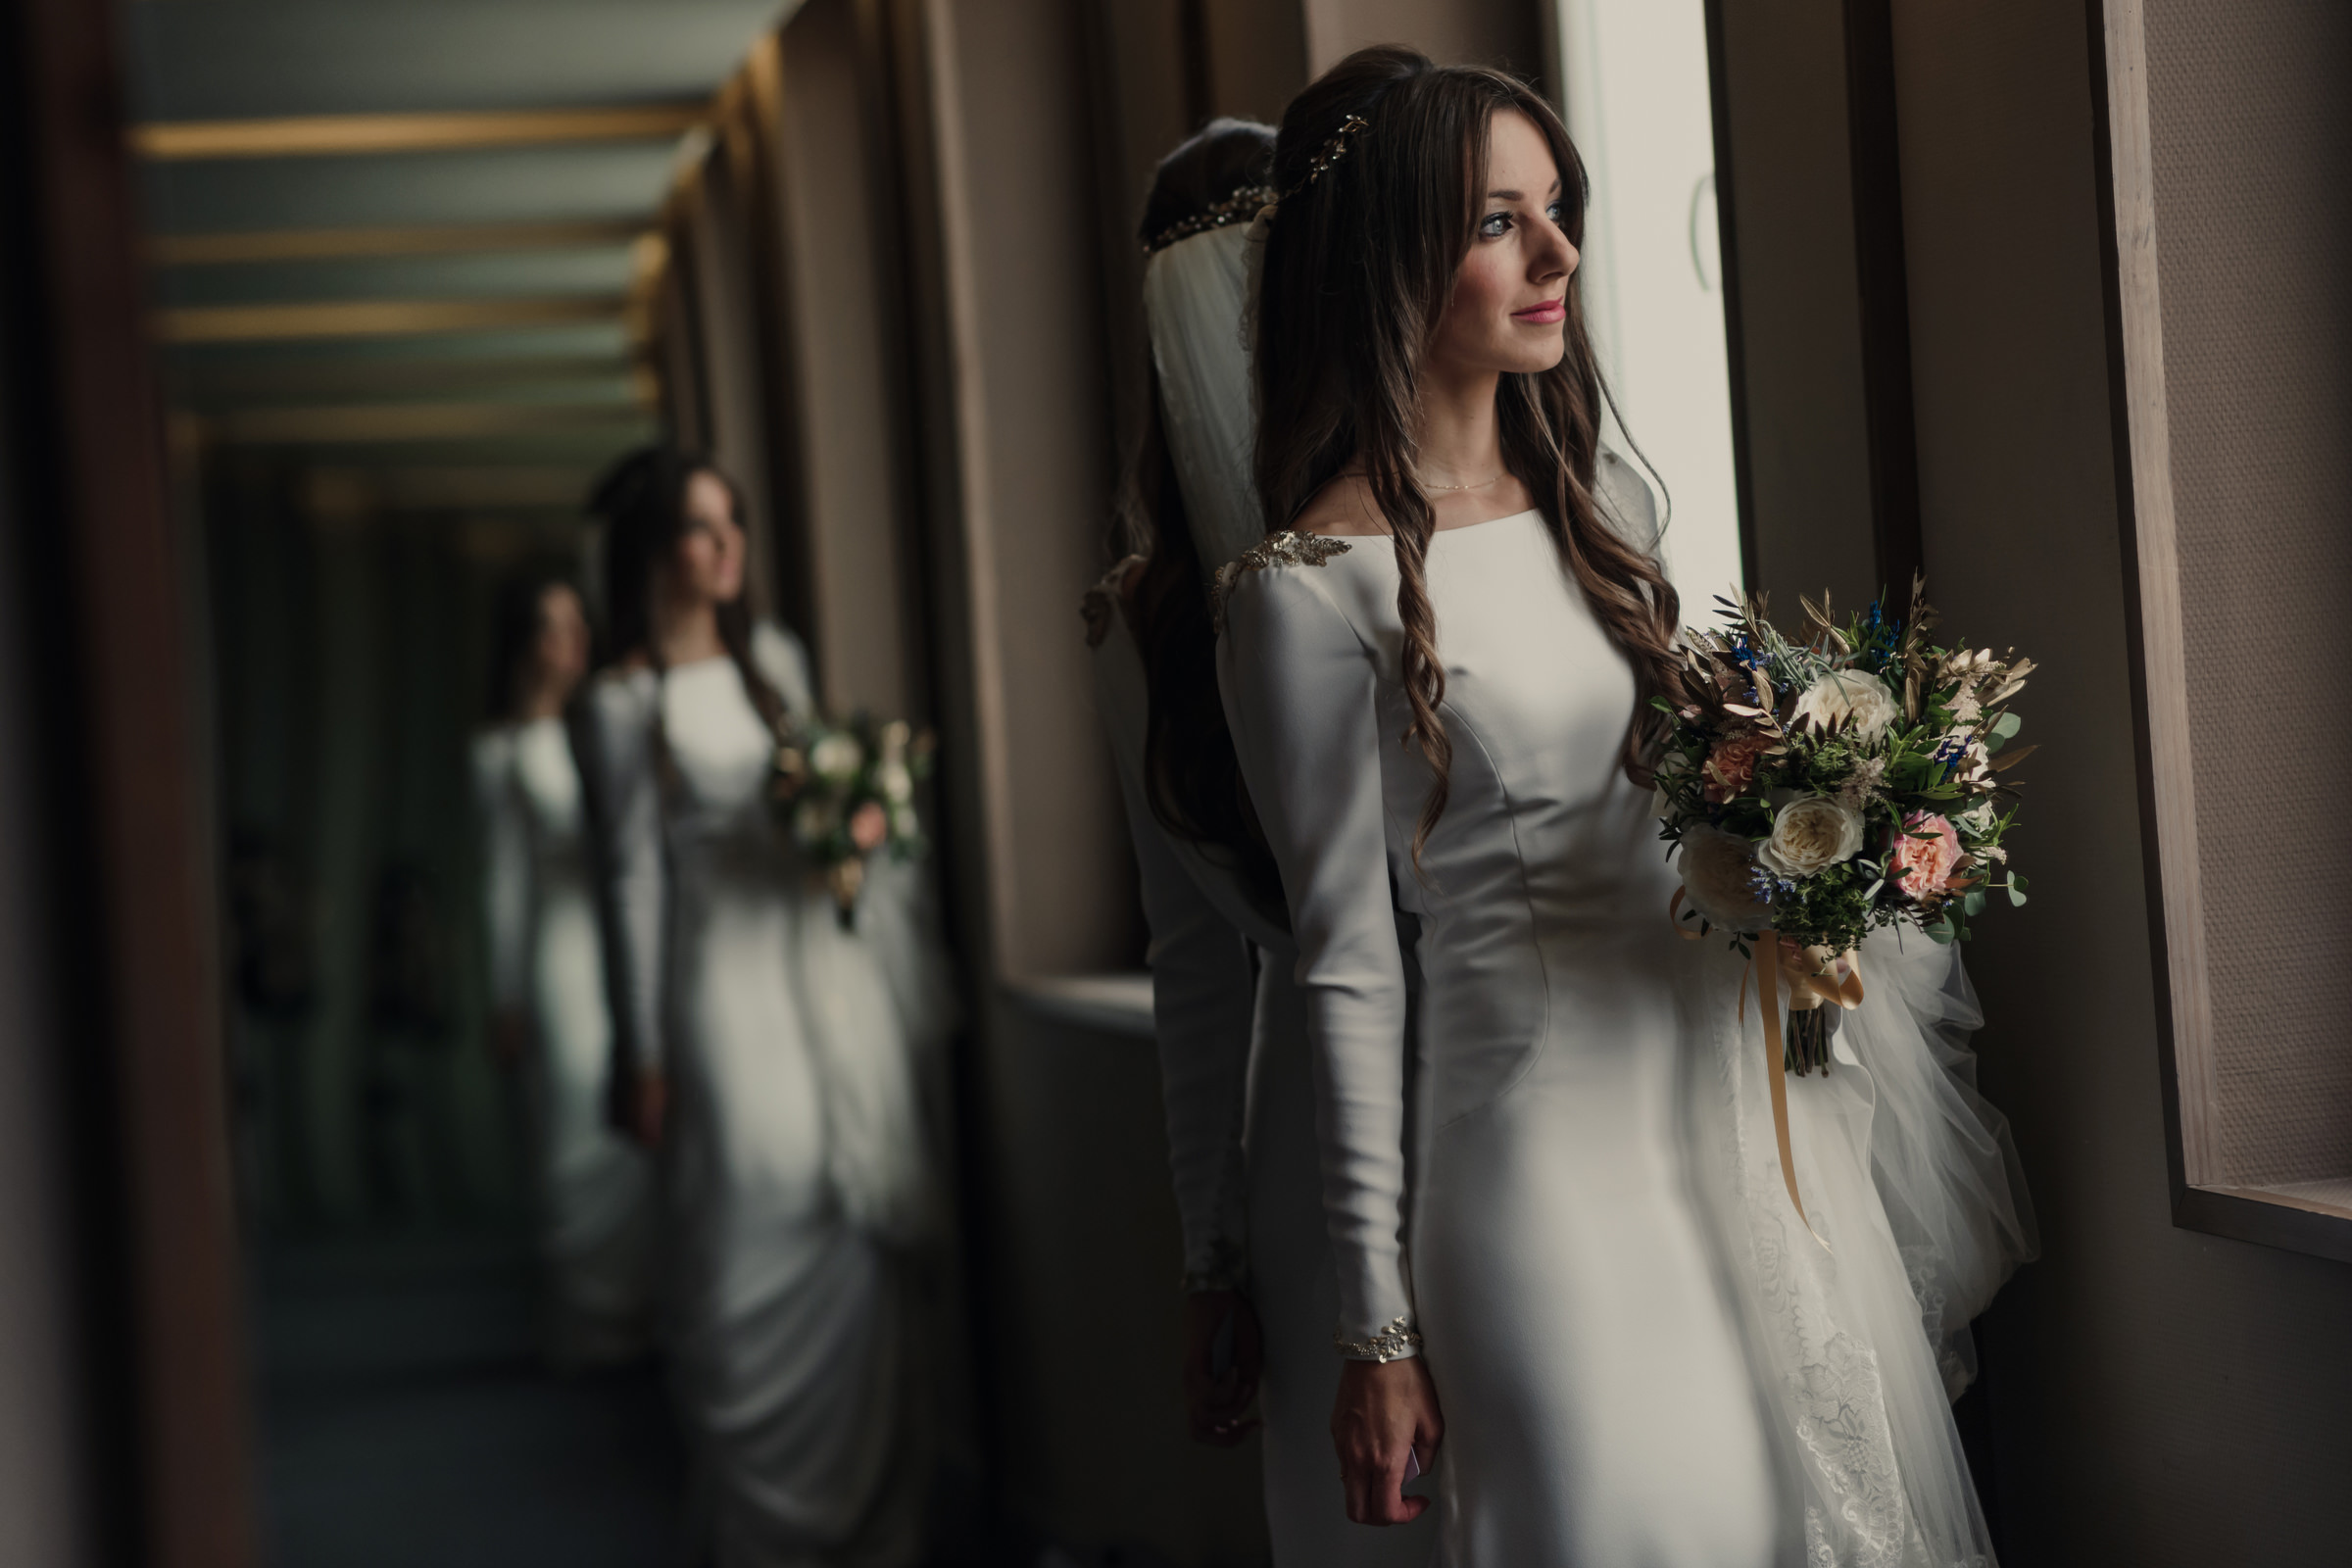 Triple reflection of bride with bouquet - photo by El Marco Rojo